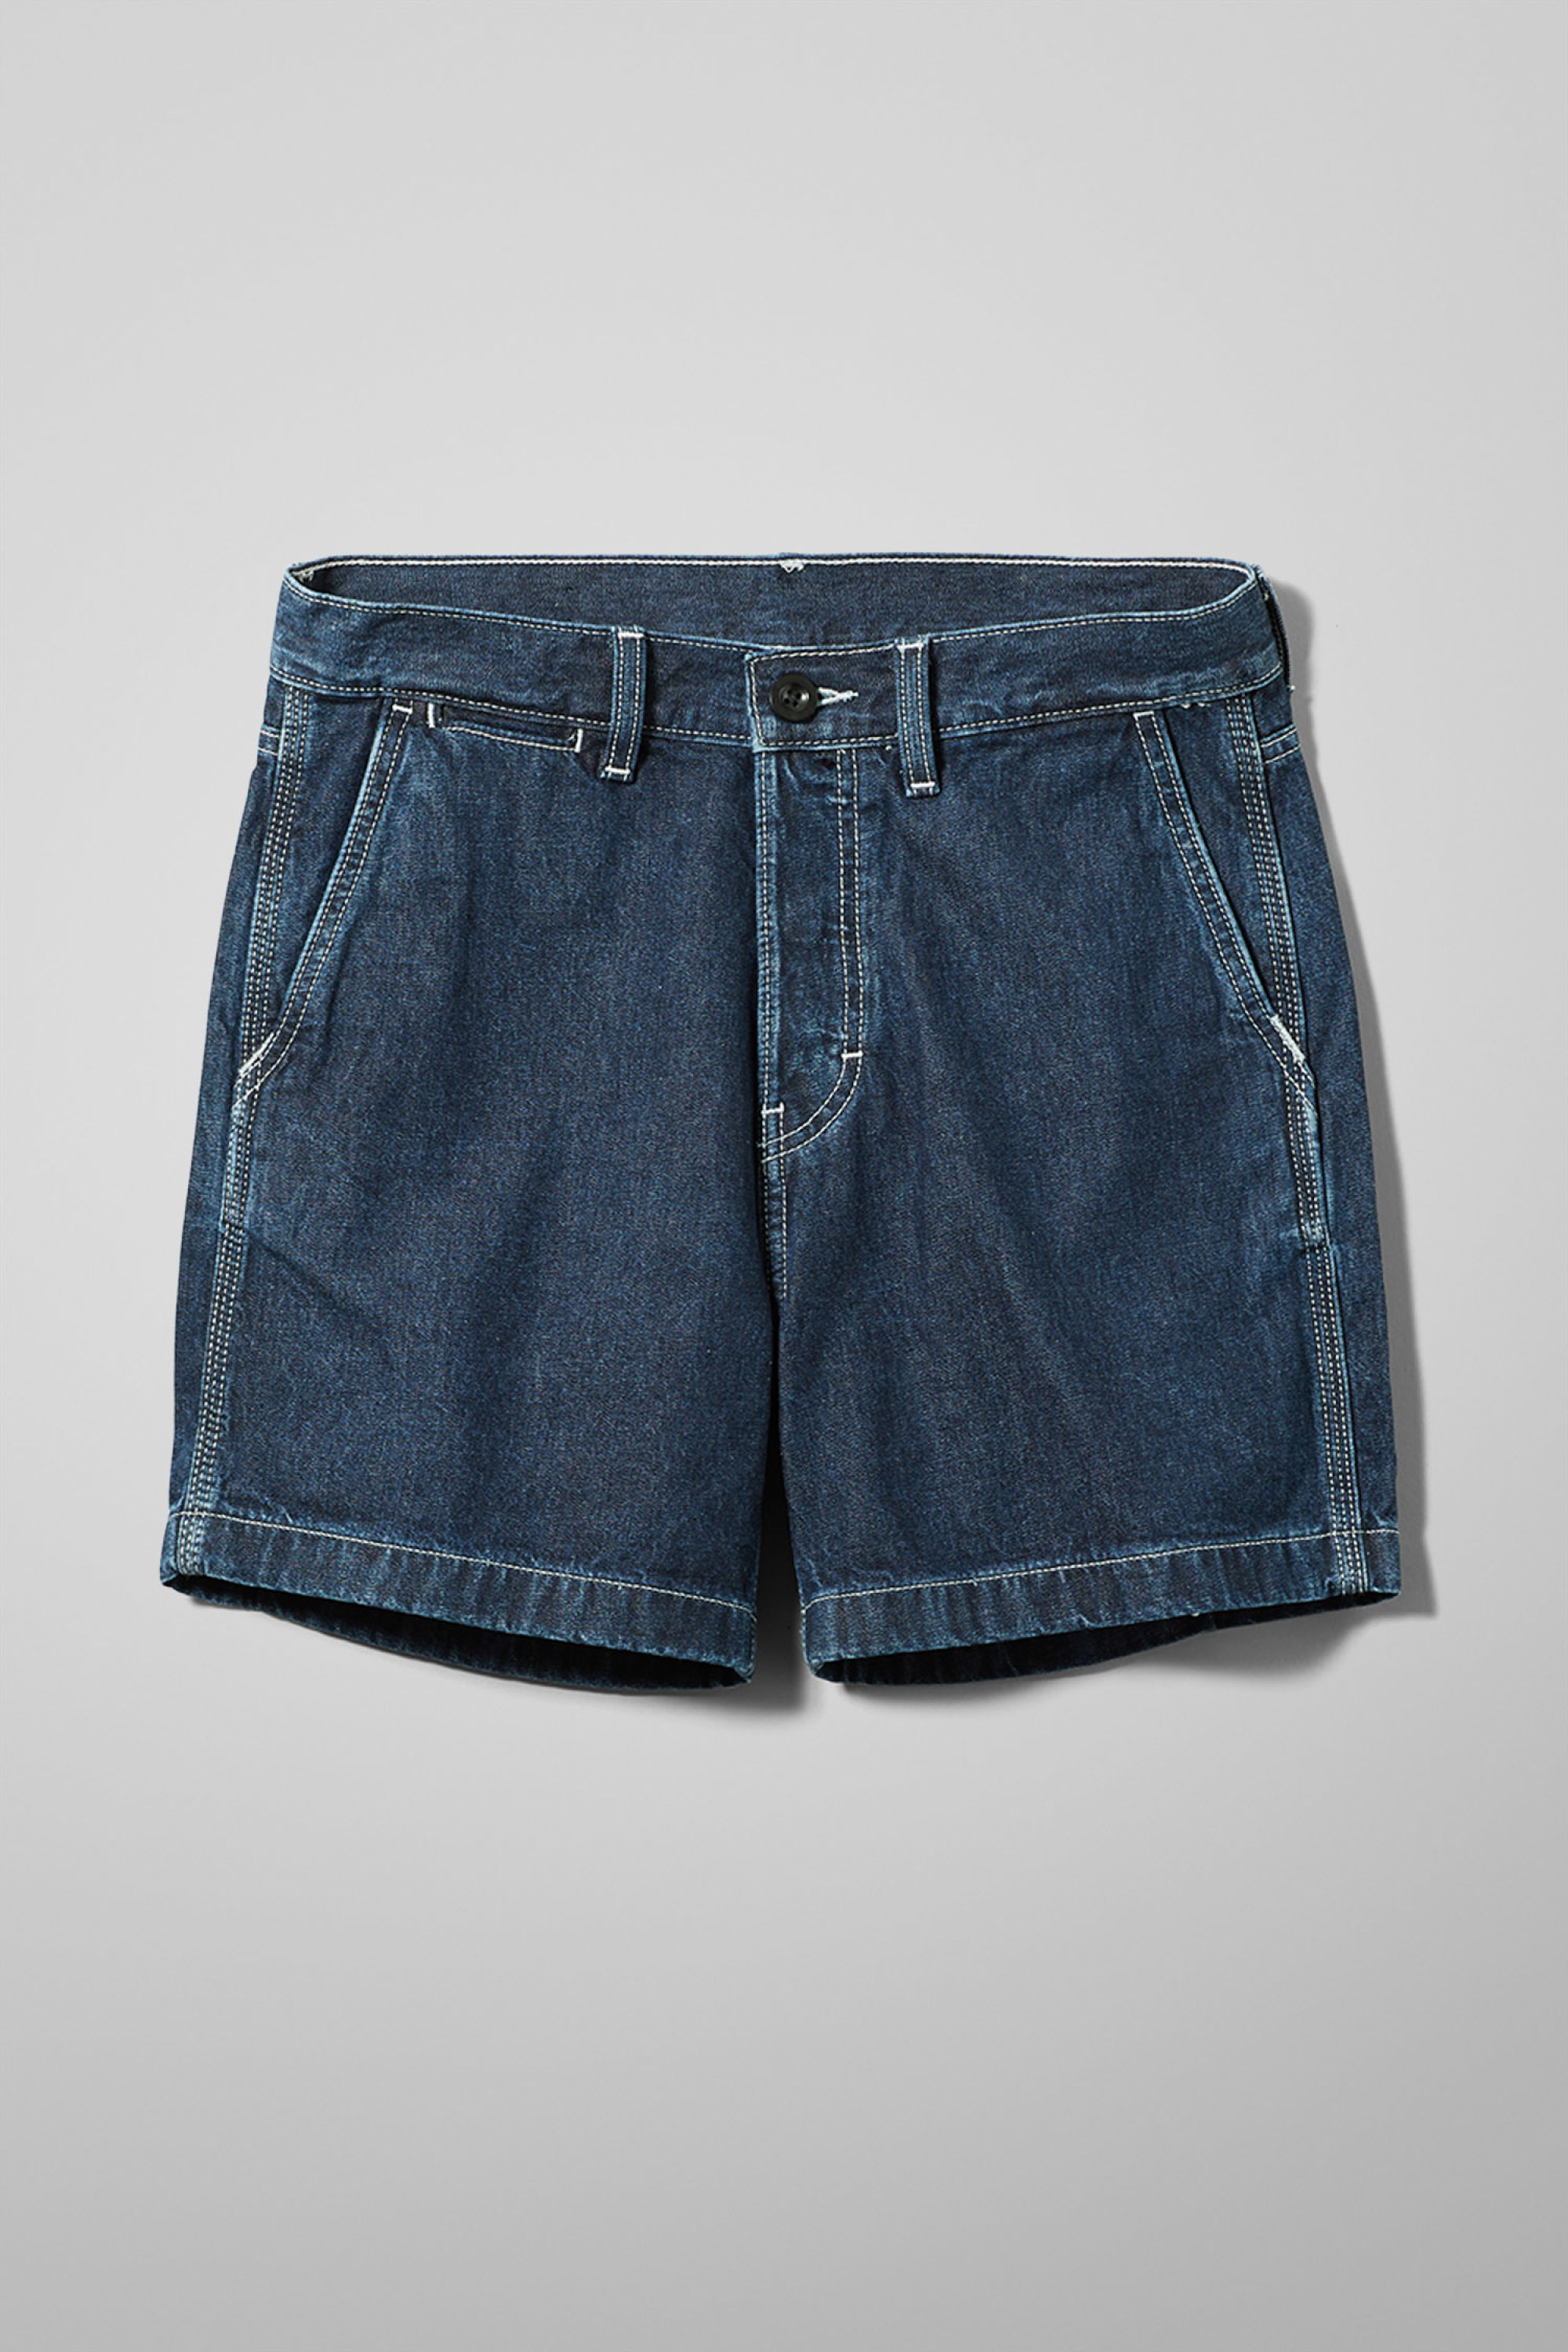 Weekday Coin Billy Blue Shorts